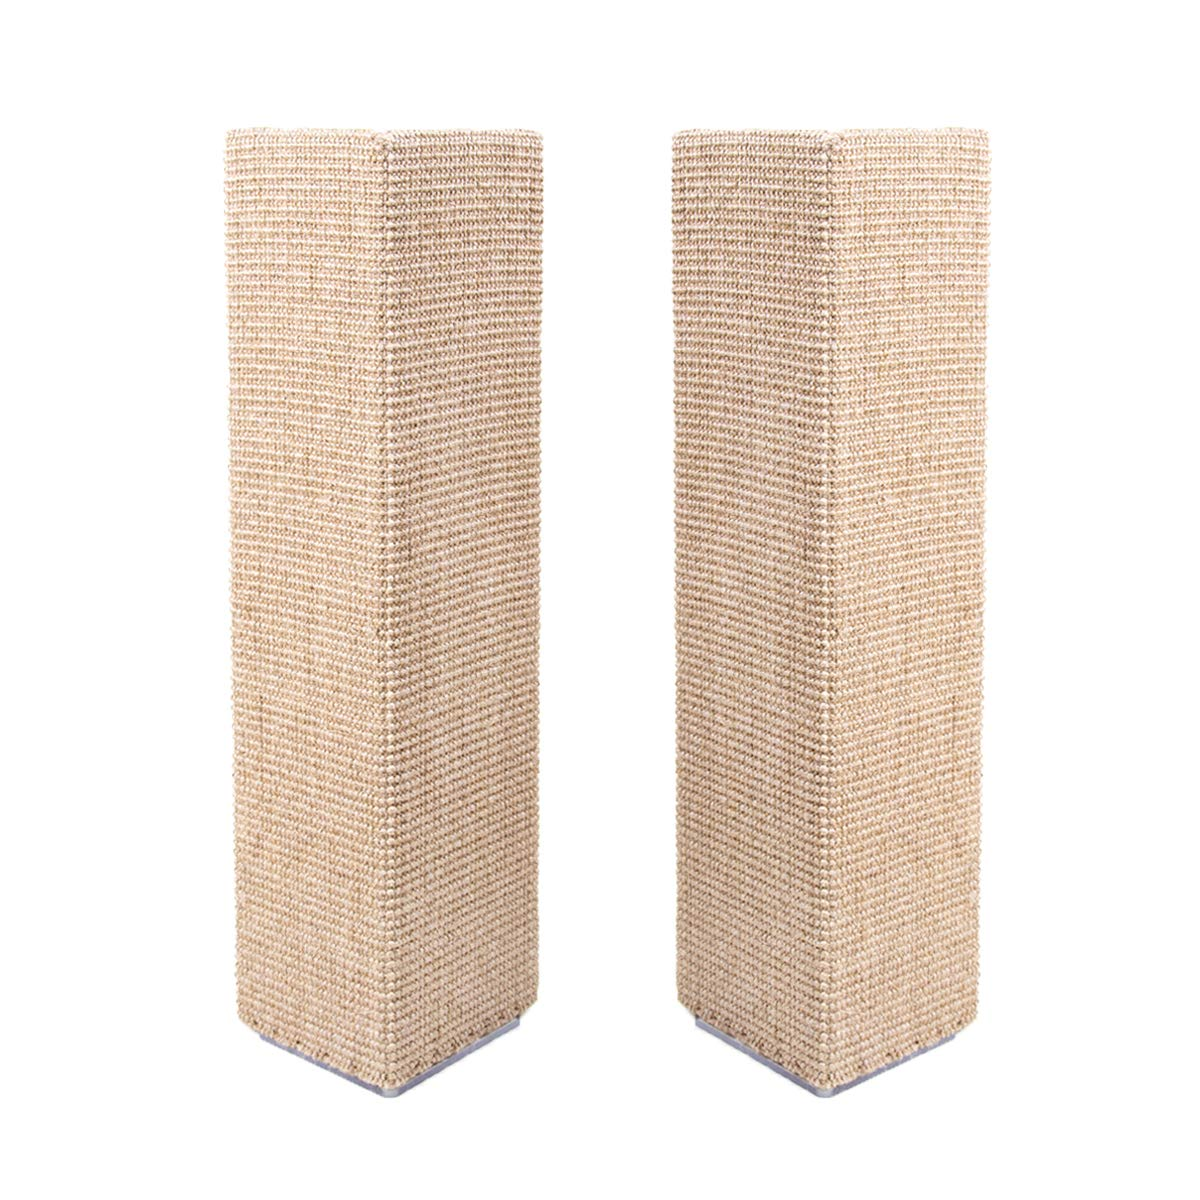 Sofa-Scratcher Squared' Cat Scratching Post & Couch-Corner/Furniture Protector 2-Pack (Beige) by Sofa-Scratcher